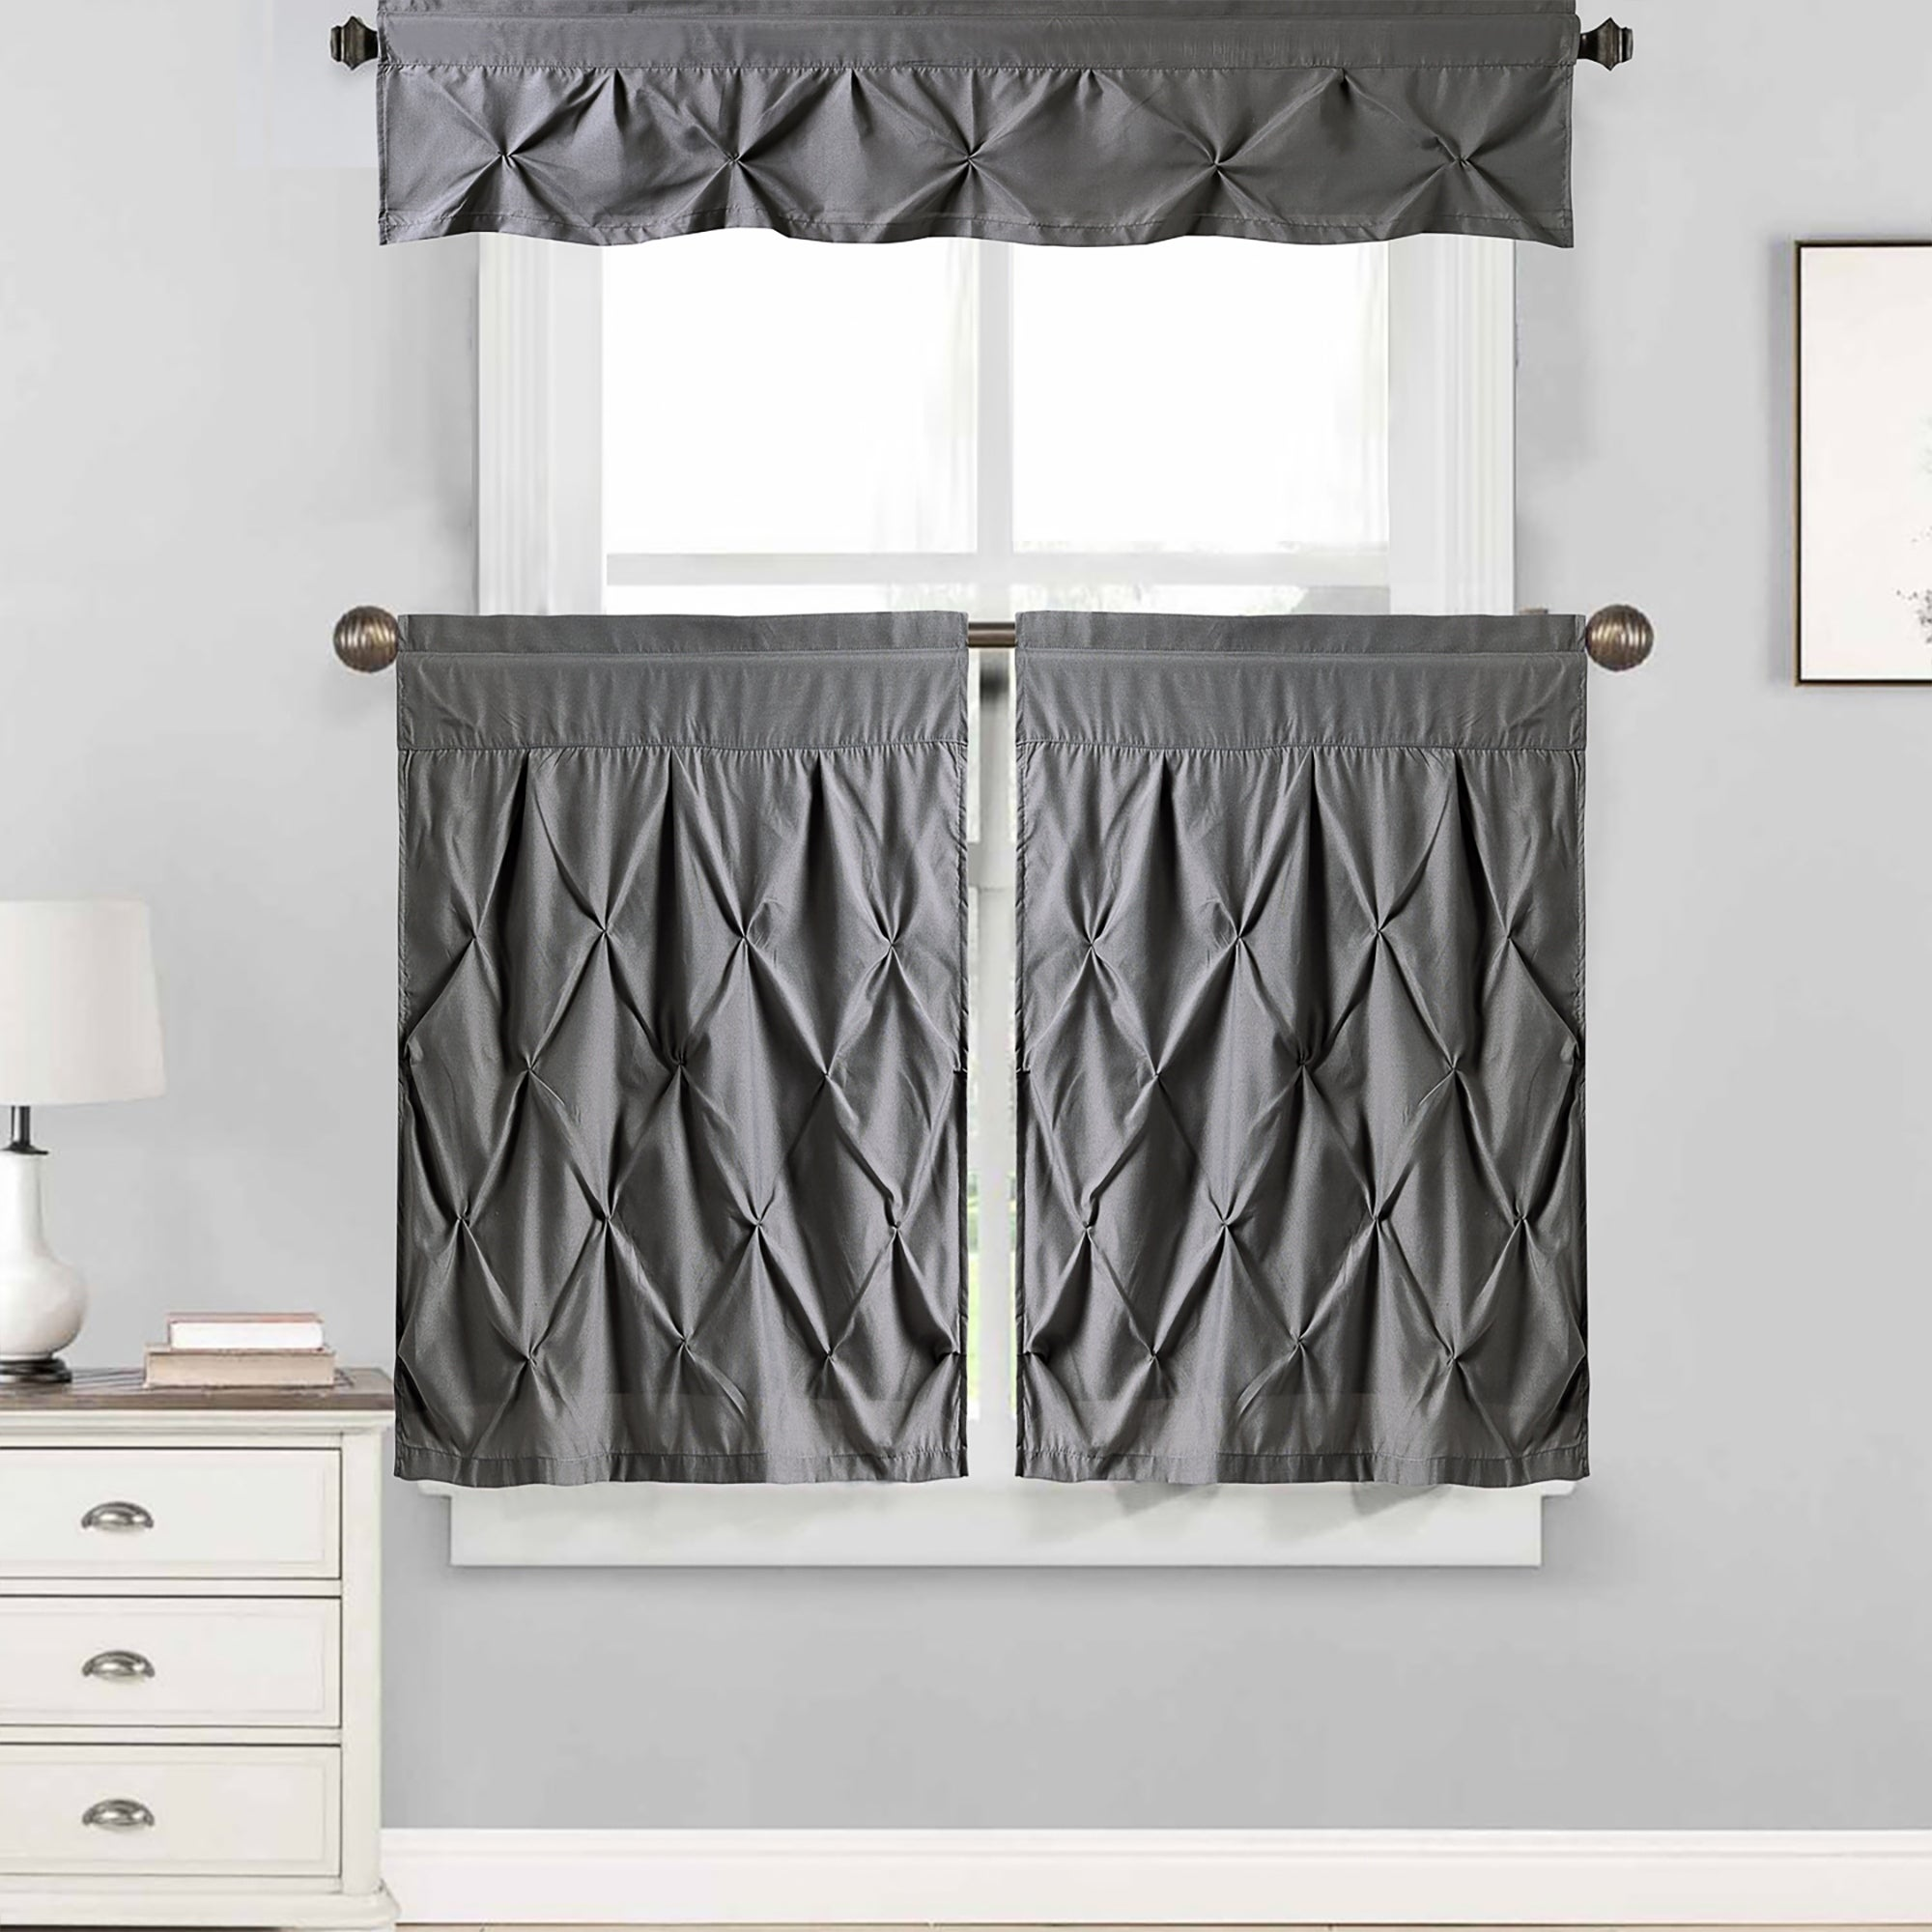 valance grey set home over or curtain product l orders garden pintuck free and overstock shipping hudson window on tier